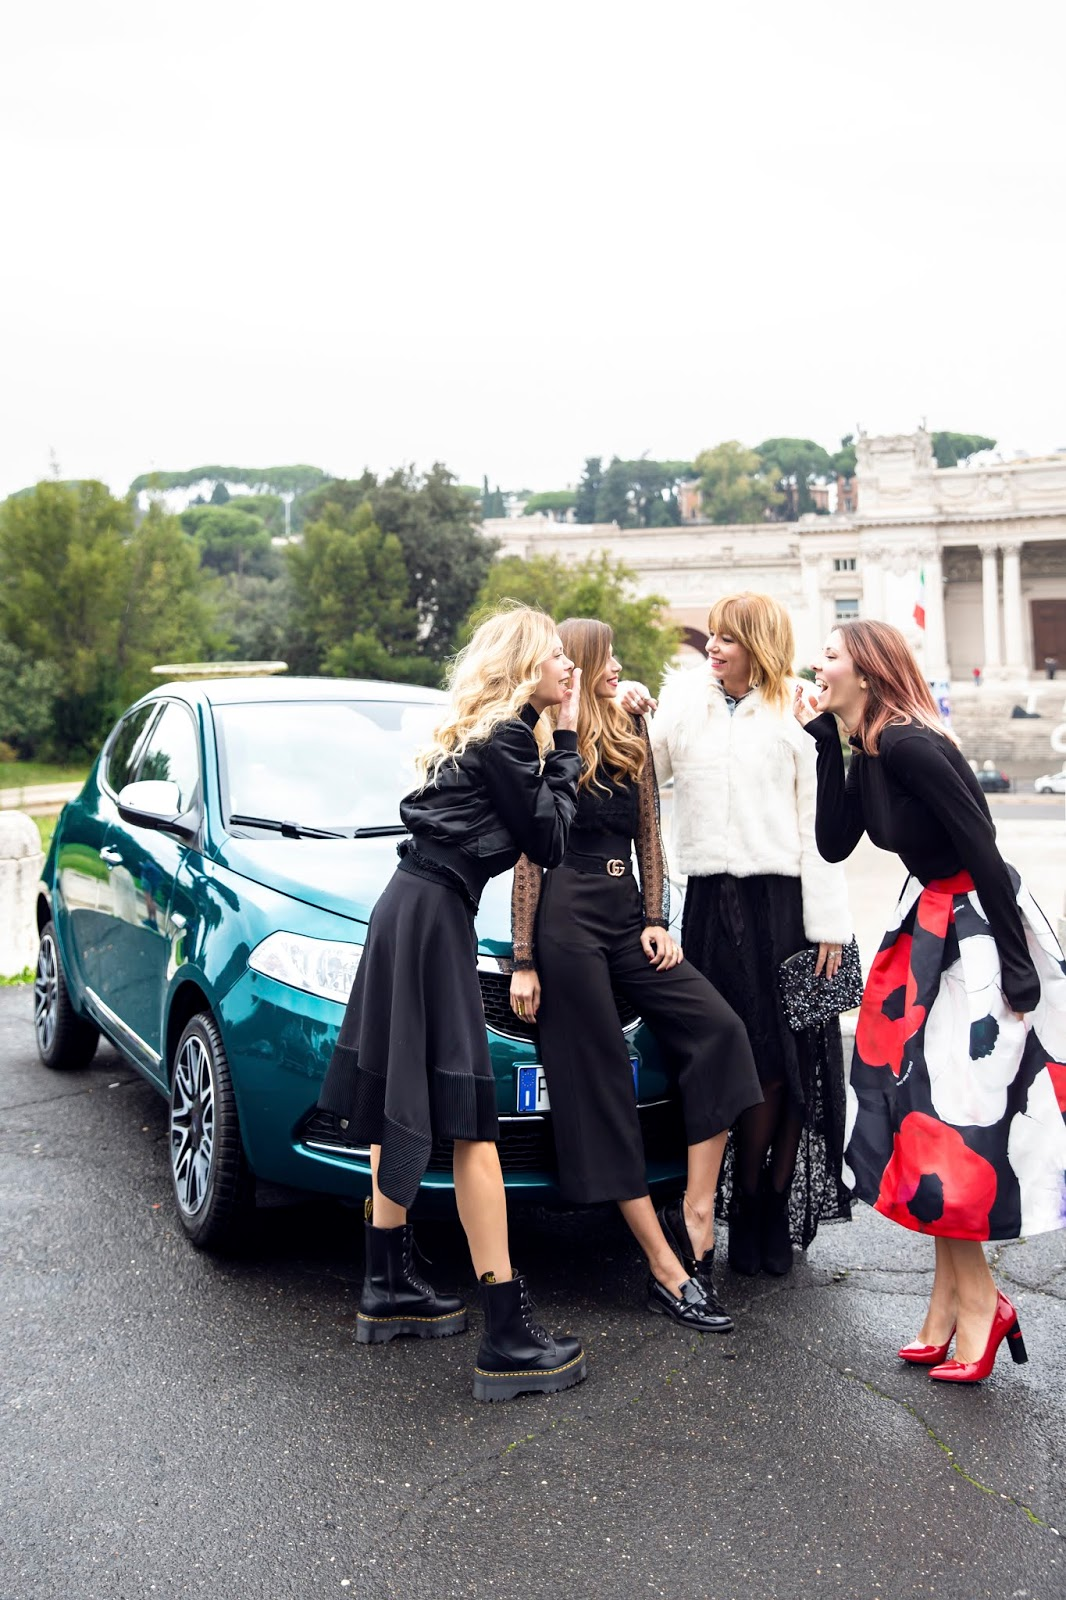 Alla scoperta di Ypsilon, la Fashion City Car sponsor di Artissima